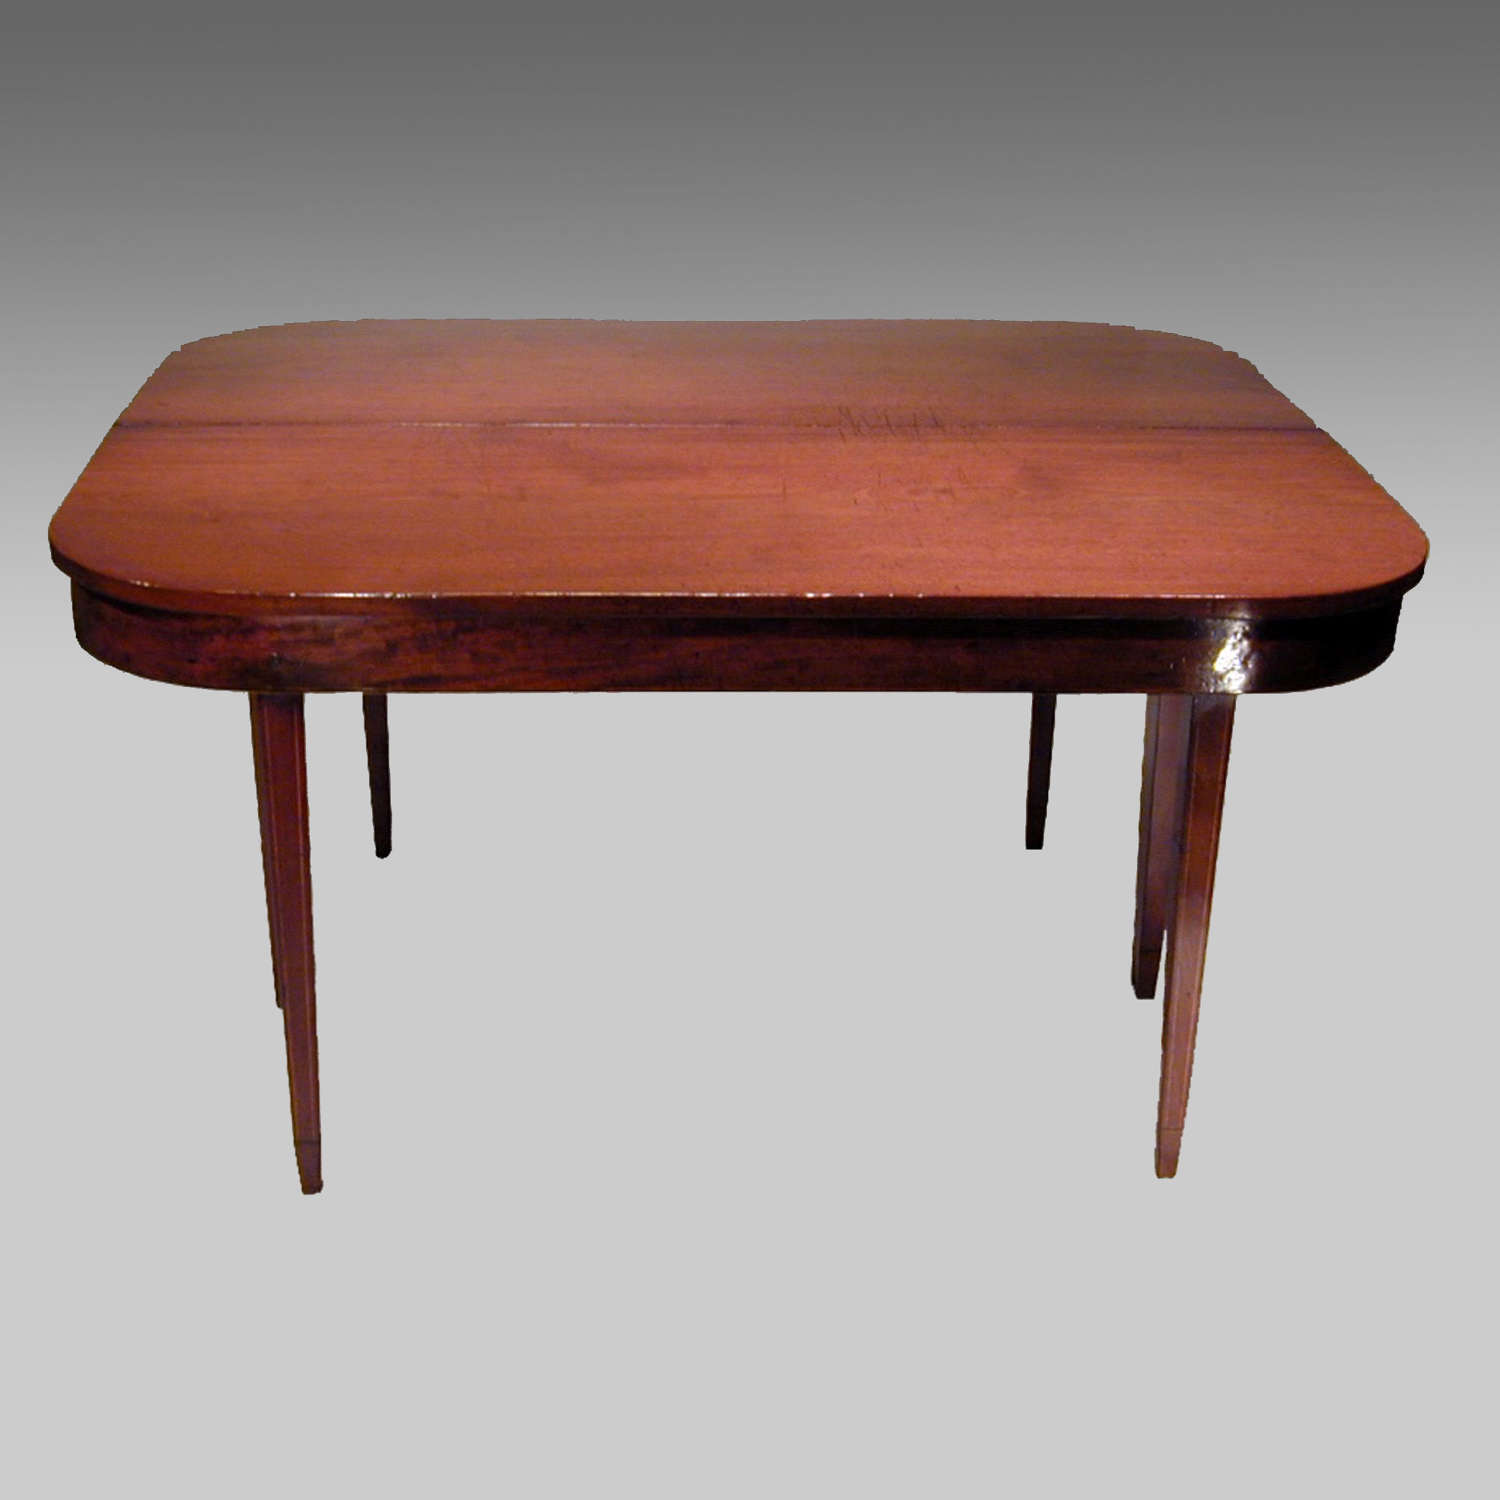 Georgian mahogany D-end dining table